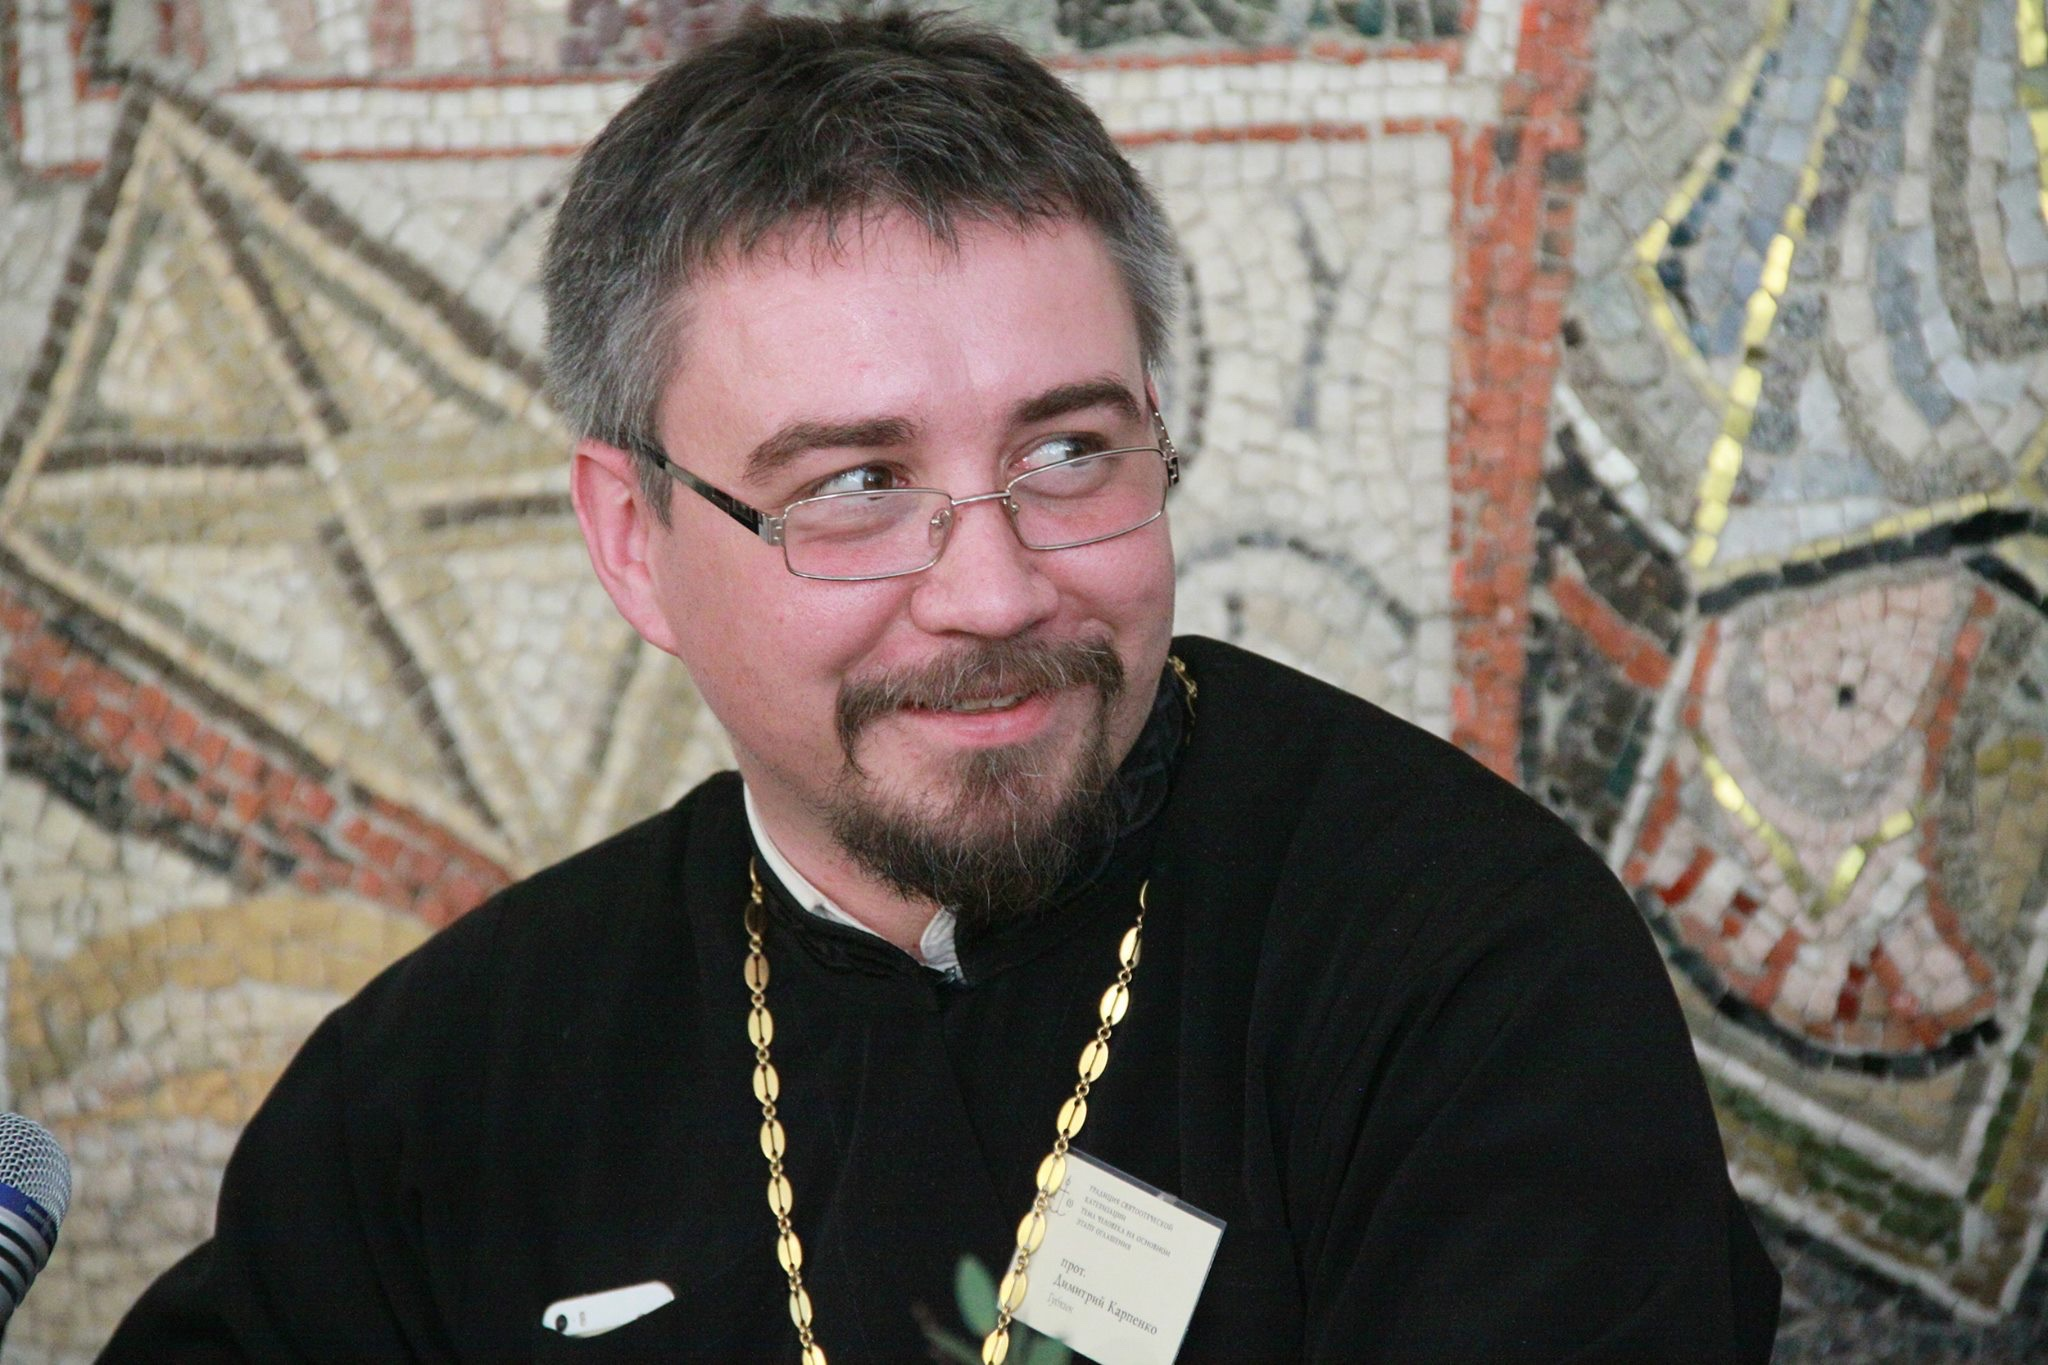 Archpriest Dmitry Karpenko